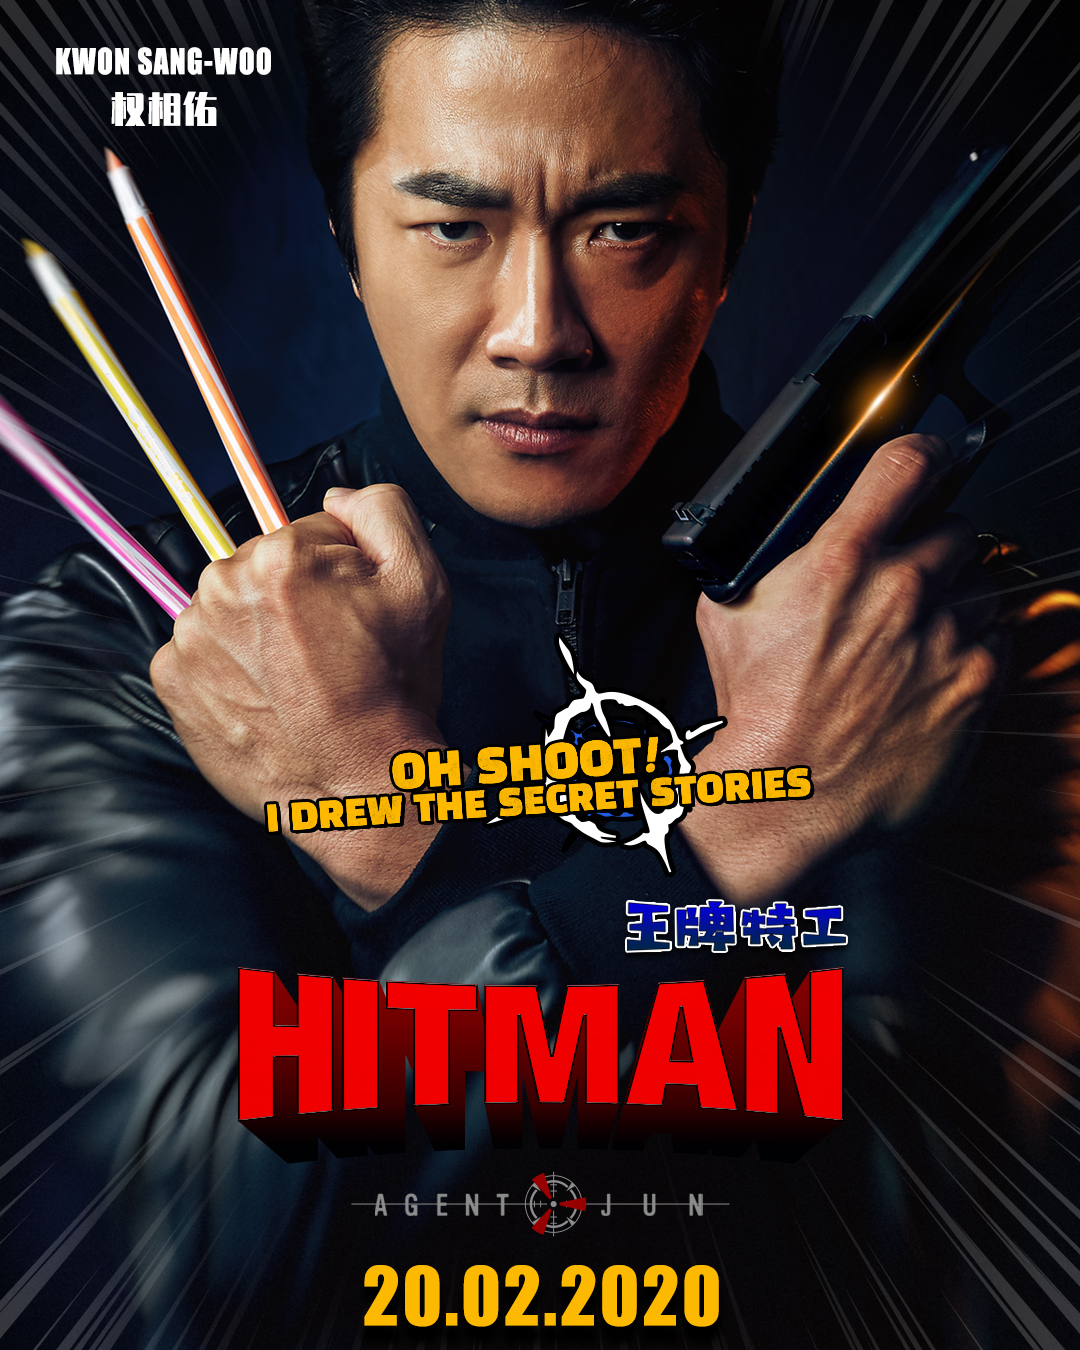 Korean Action Comedy Hitman Agent Jun Opens In Singapore On 11 Feb Seoulhype